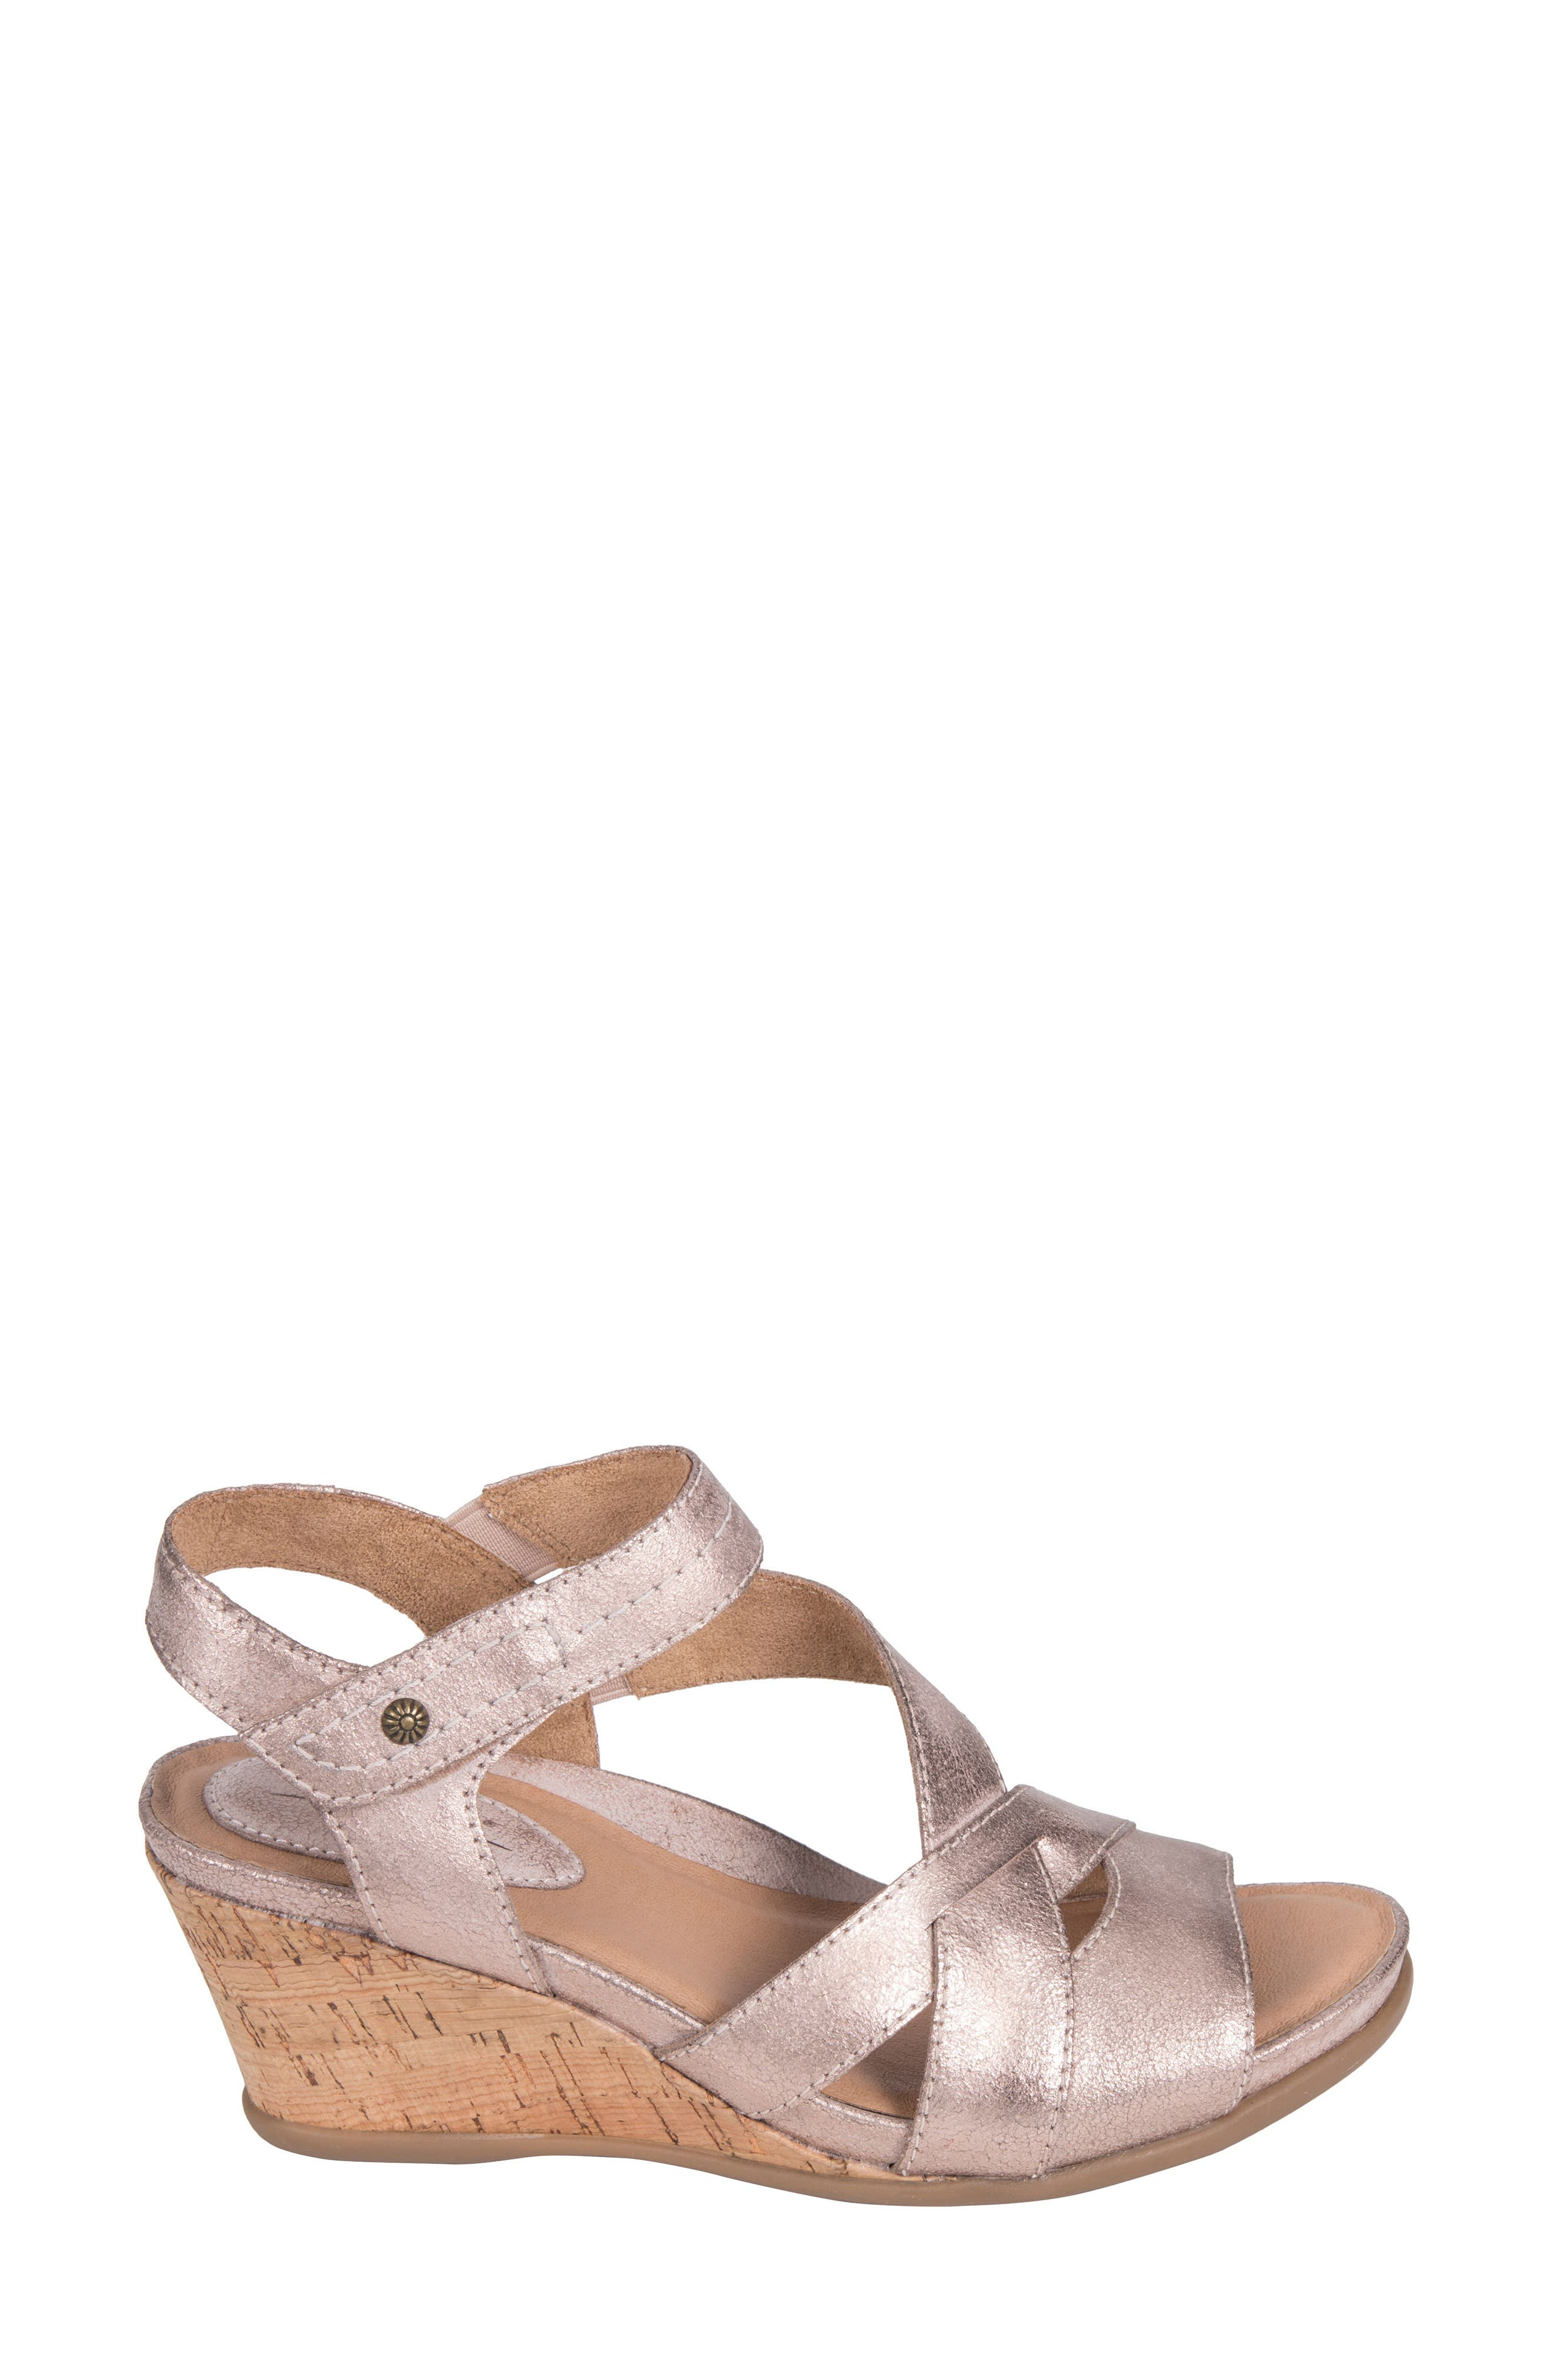 Thistle Wedge Sandal,                             Alternate thumbnail 3, color,                             Pink Leather